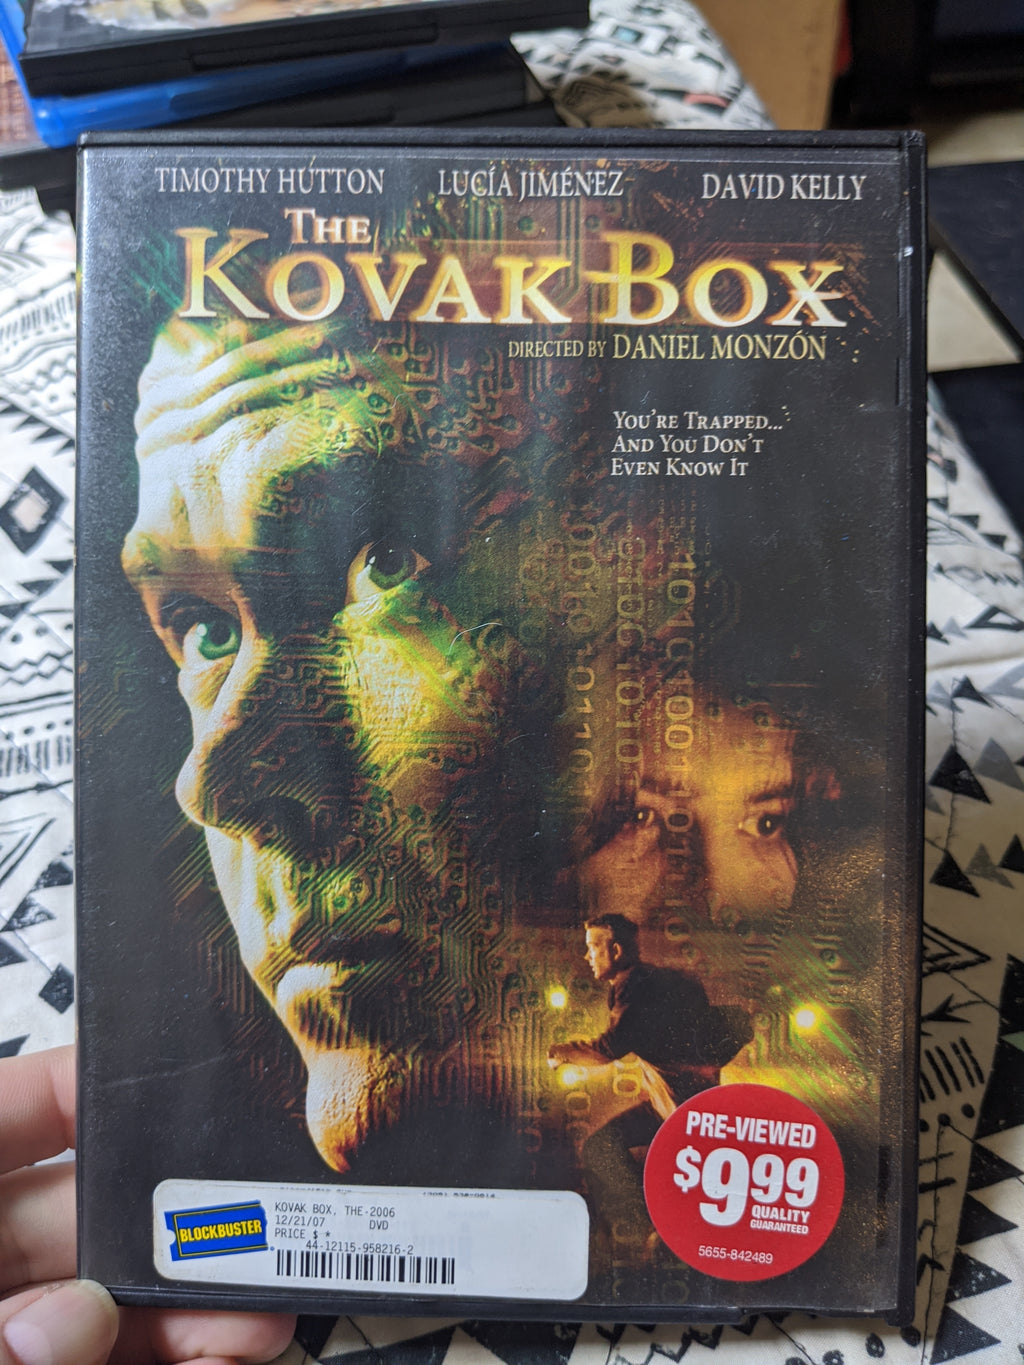 The Kovak Box - Timothy Hutton - Lucia Jimenez